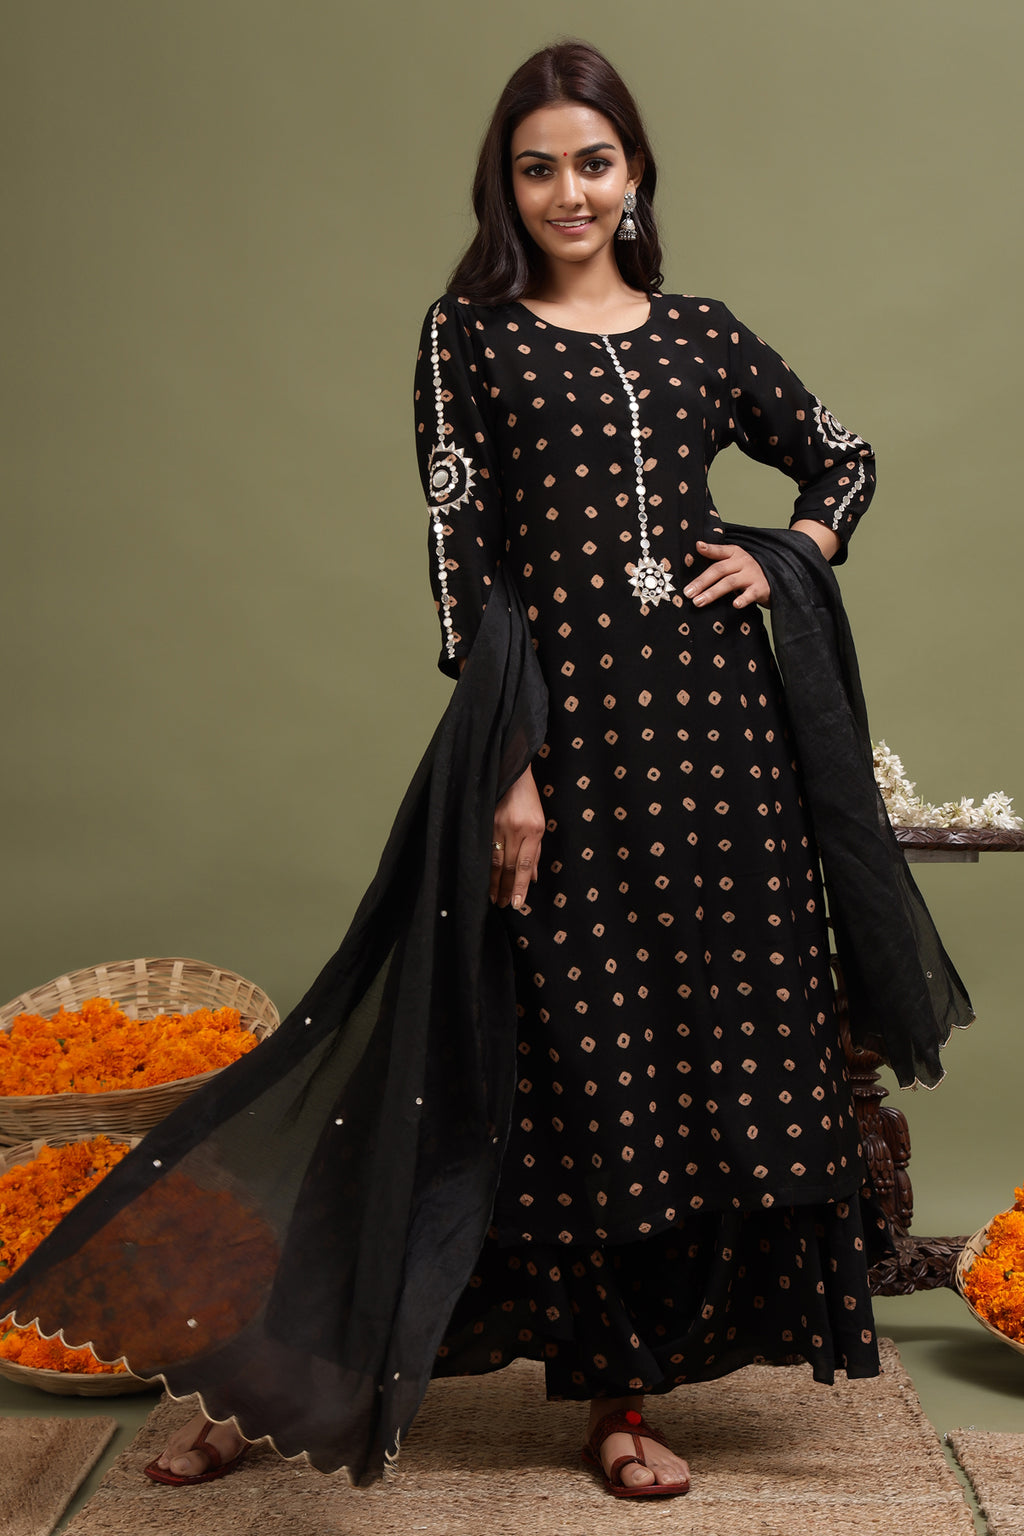 MODAL SILK MIRROR WORK DUPATTA IN BLACK COLOUR